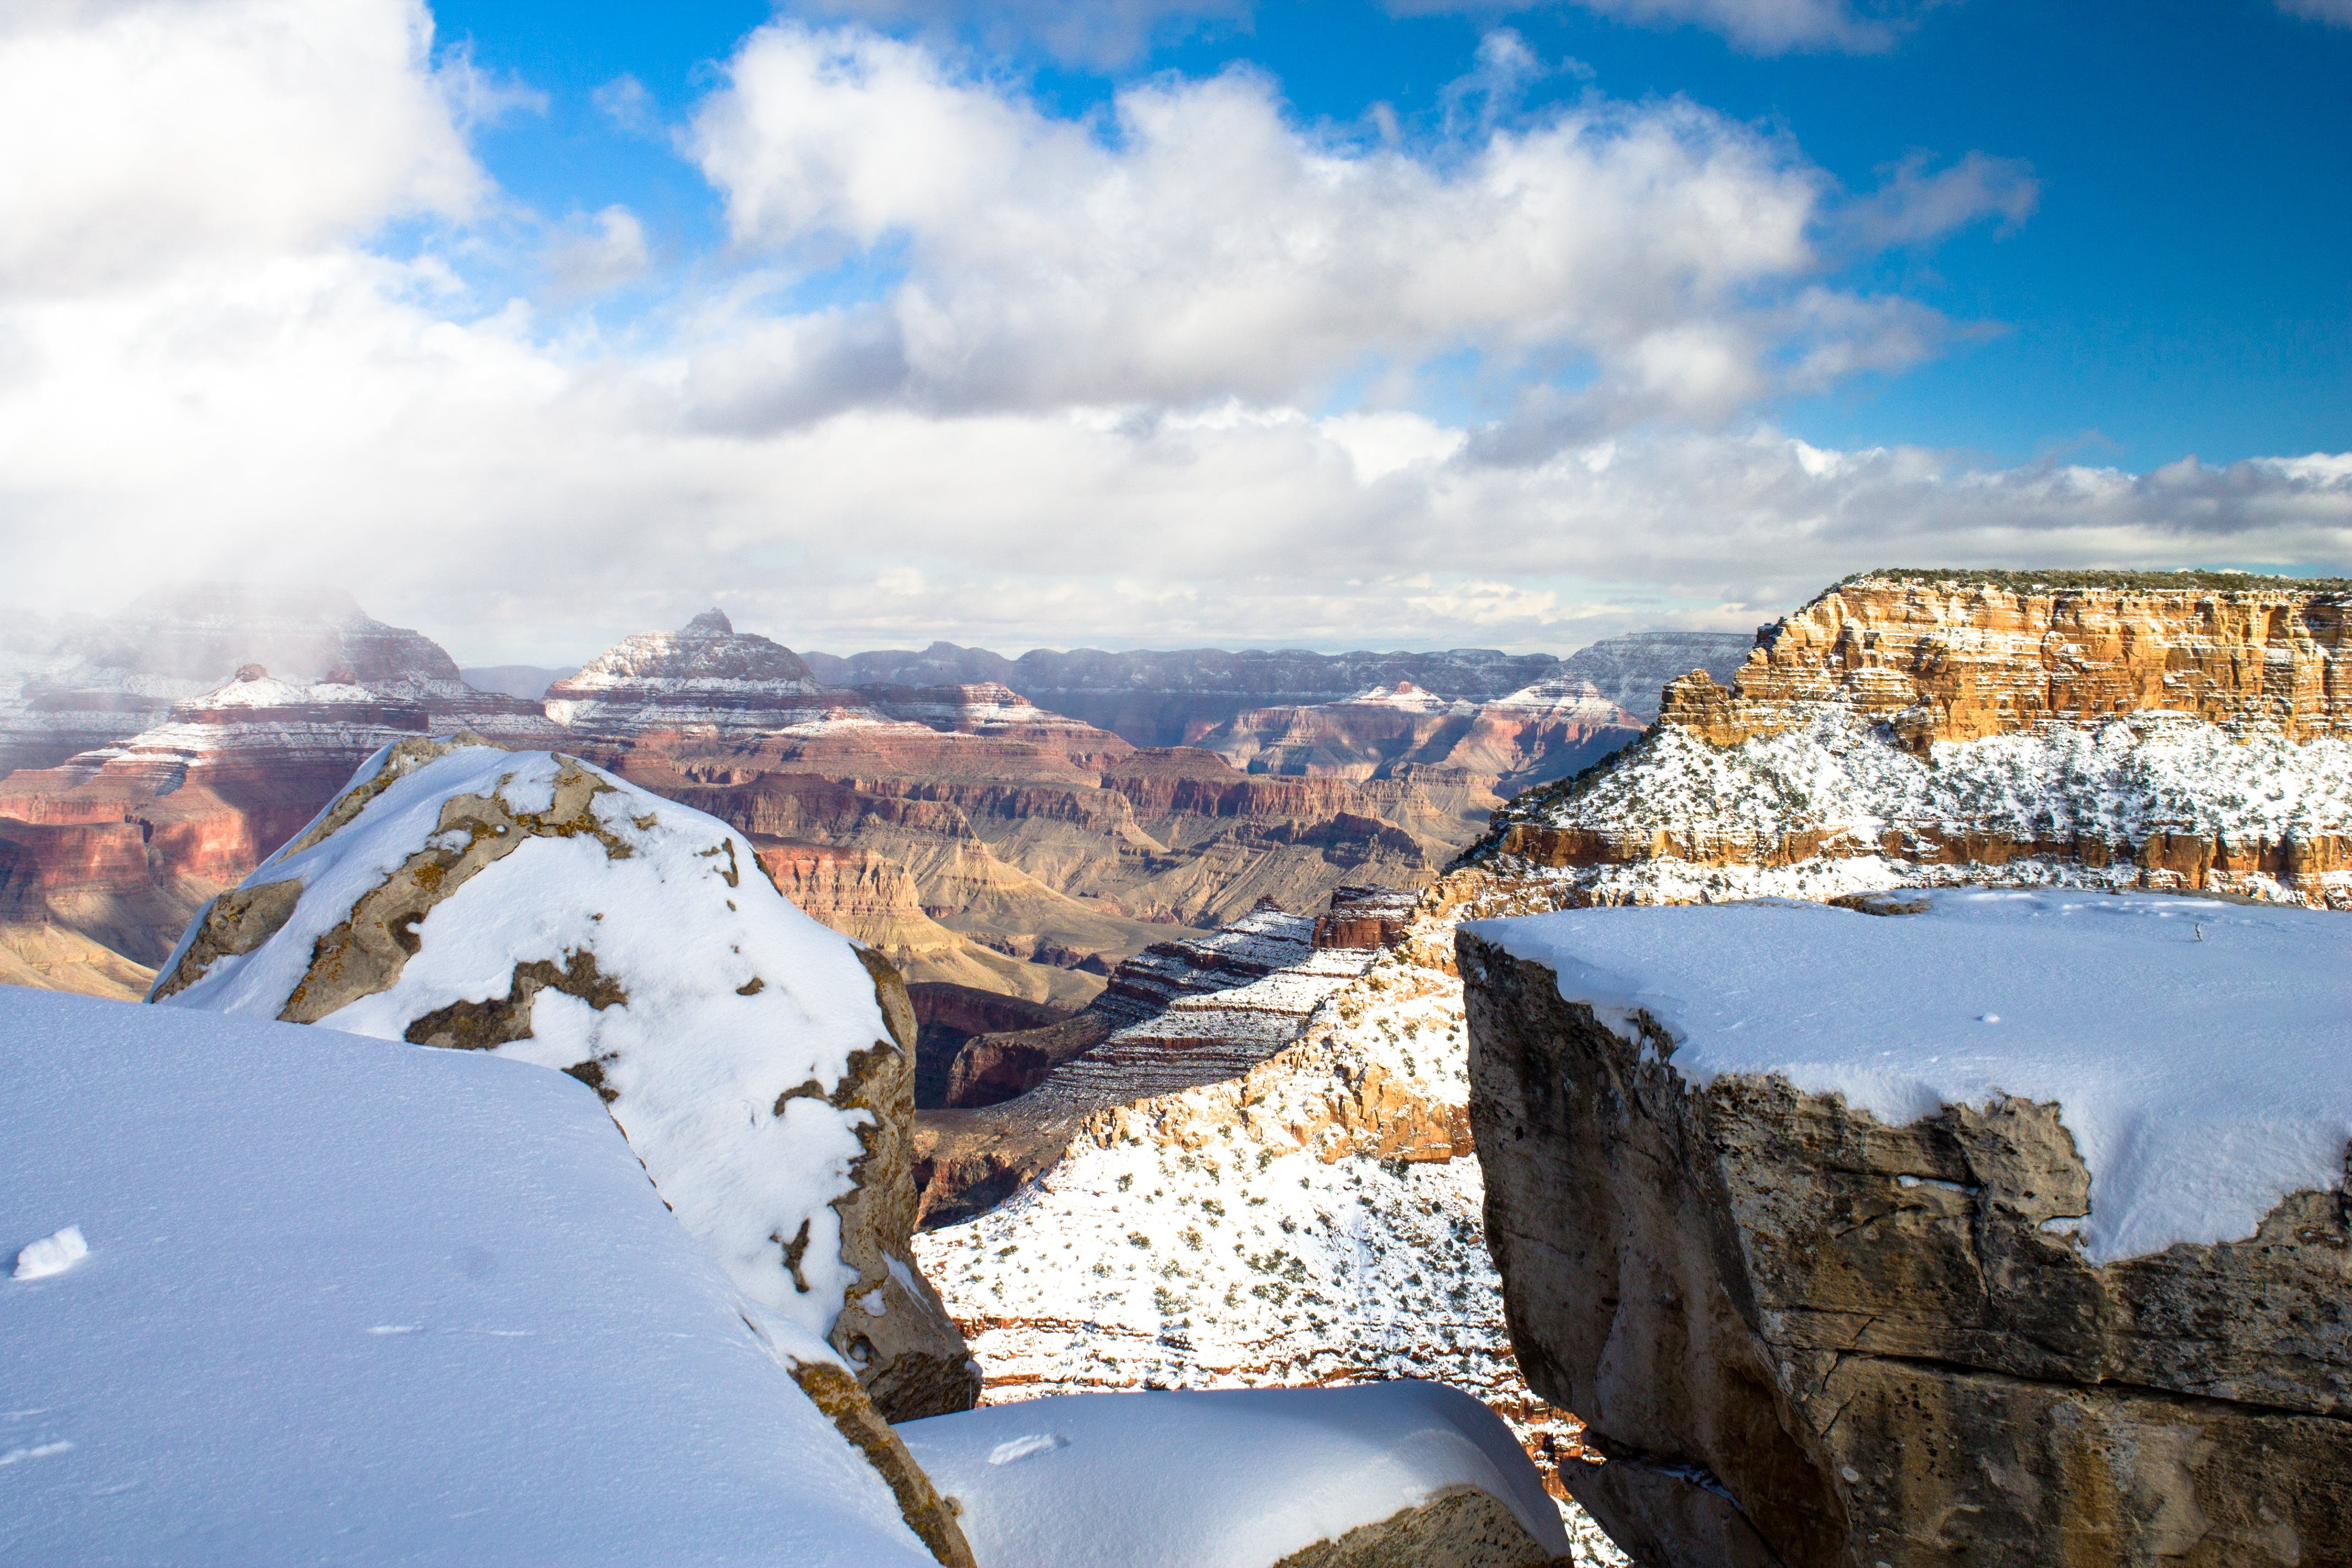 Top View of Canyon Covered With Snow